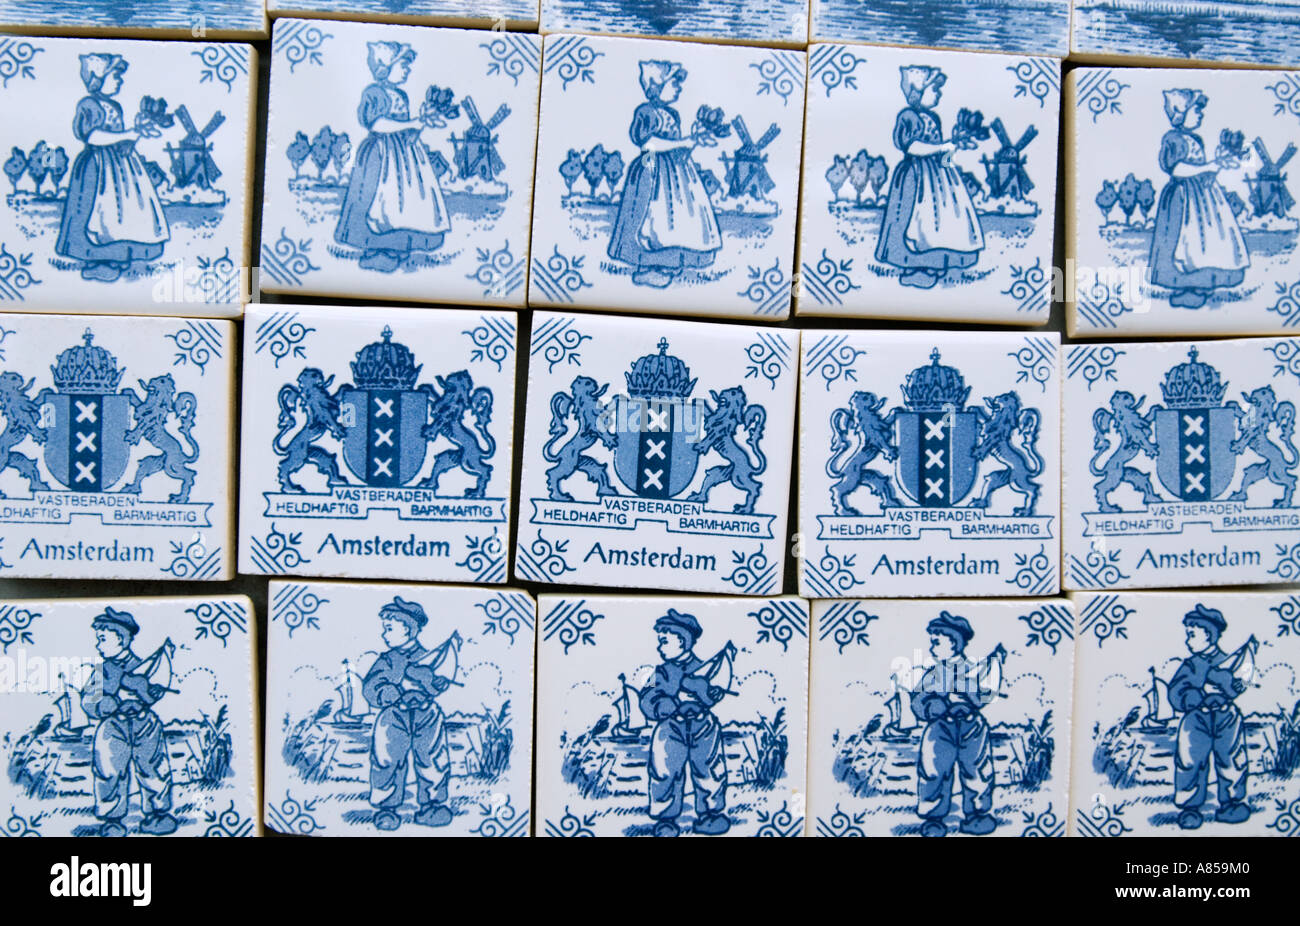 Traditional dutch ceramic Delft Ware designs on fridge magnets for ...